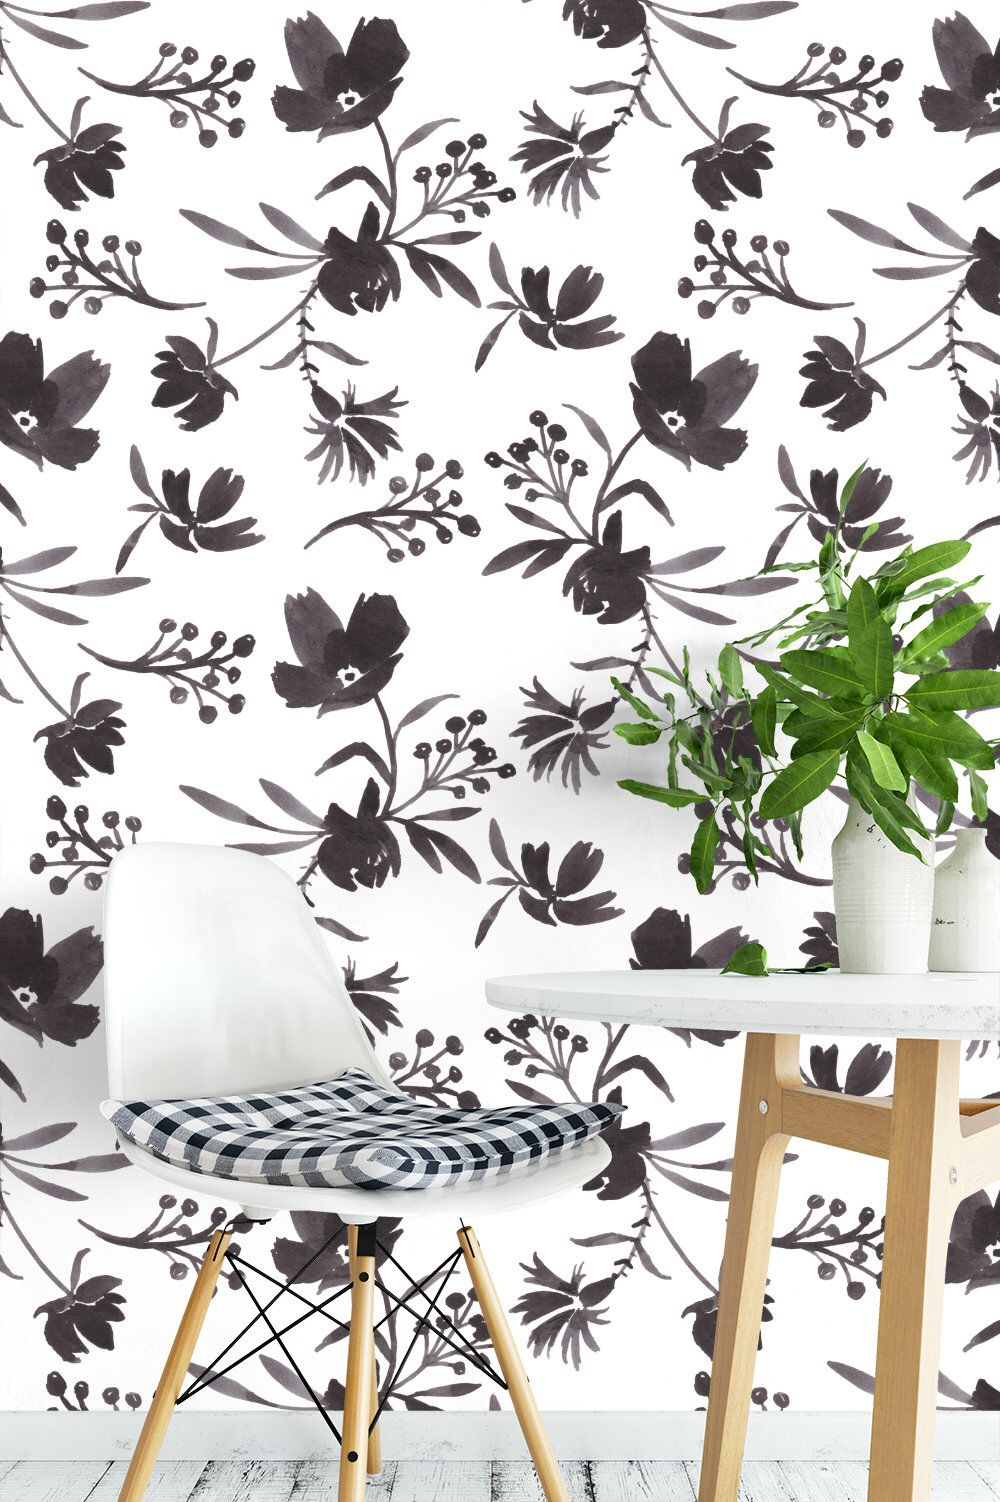 Flora Adaline White Removable Wallpaper Floral Peel And Stick Wallpaper Wall Mural Black And White B Removable Wallpaper Temporary Wallpaper Wall Wallpaper